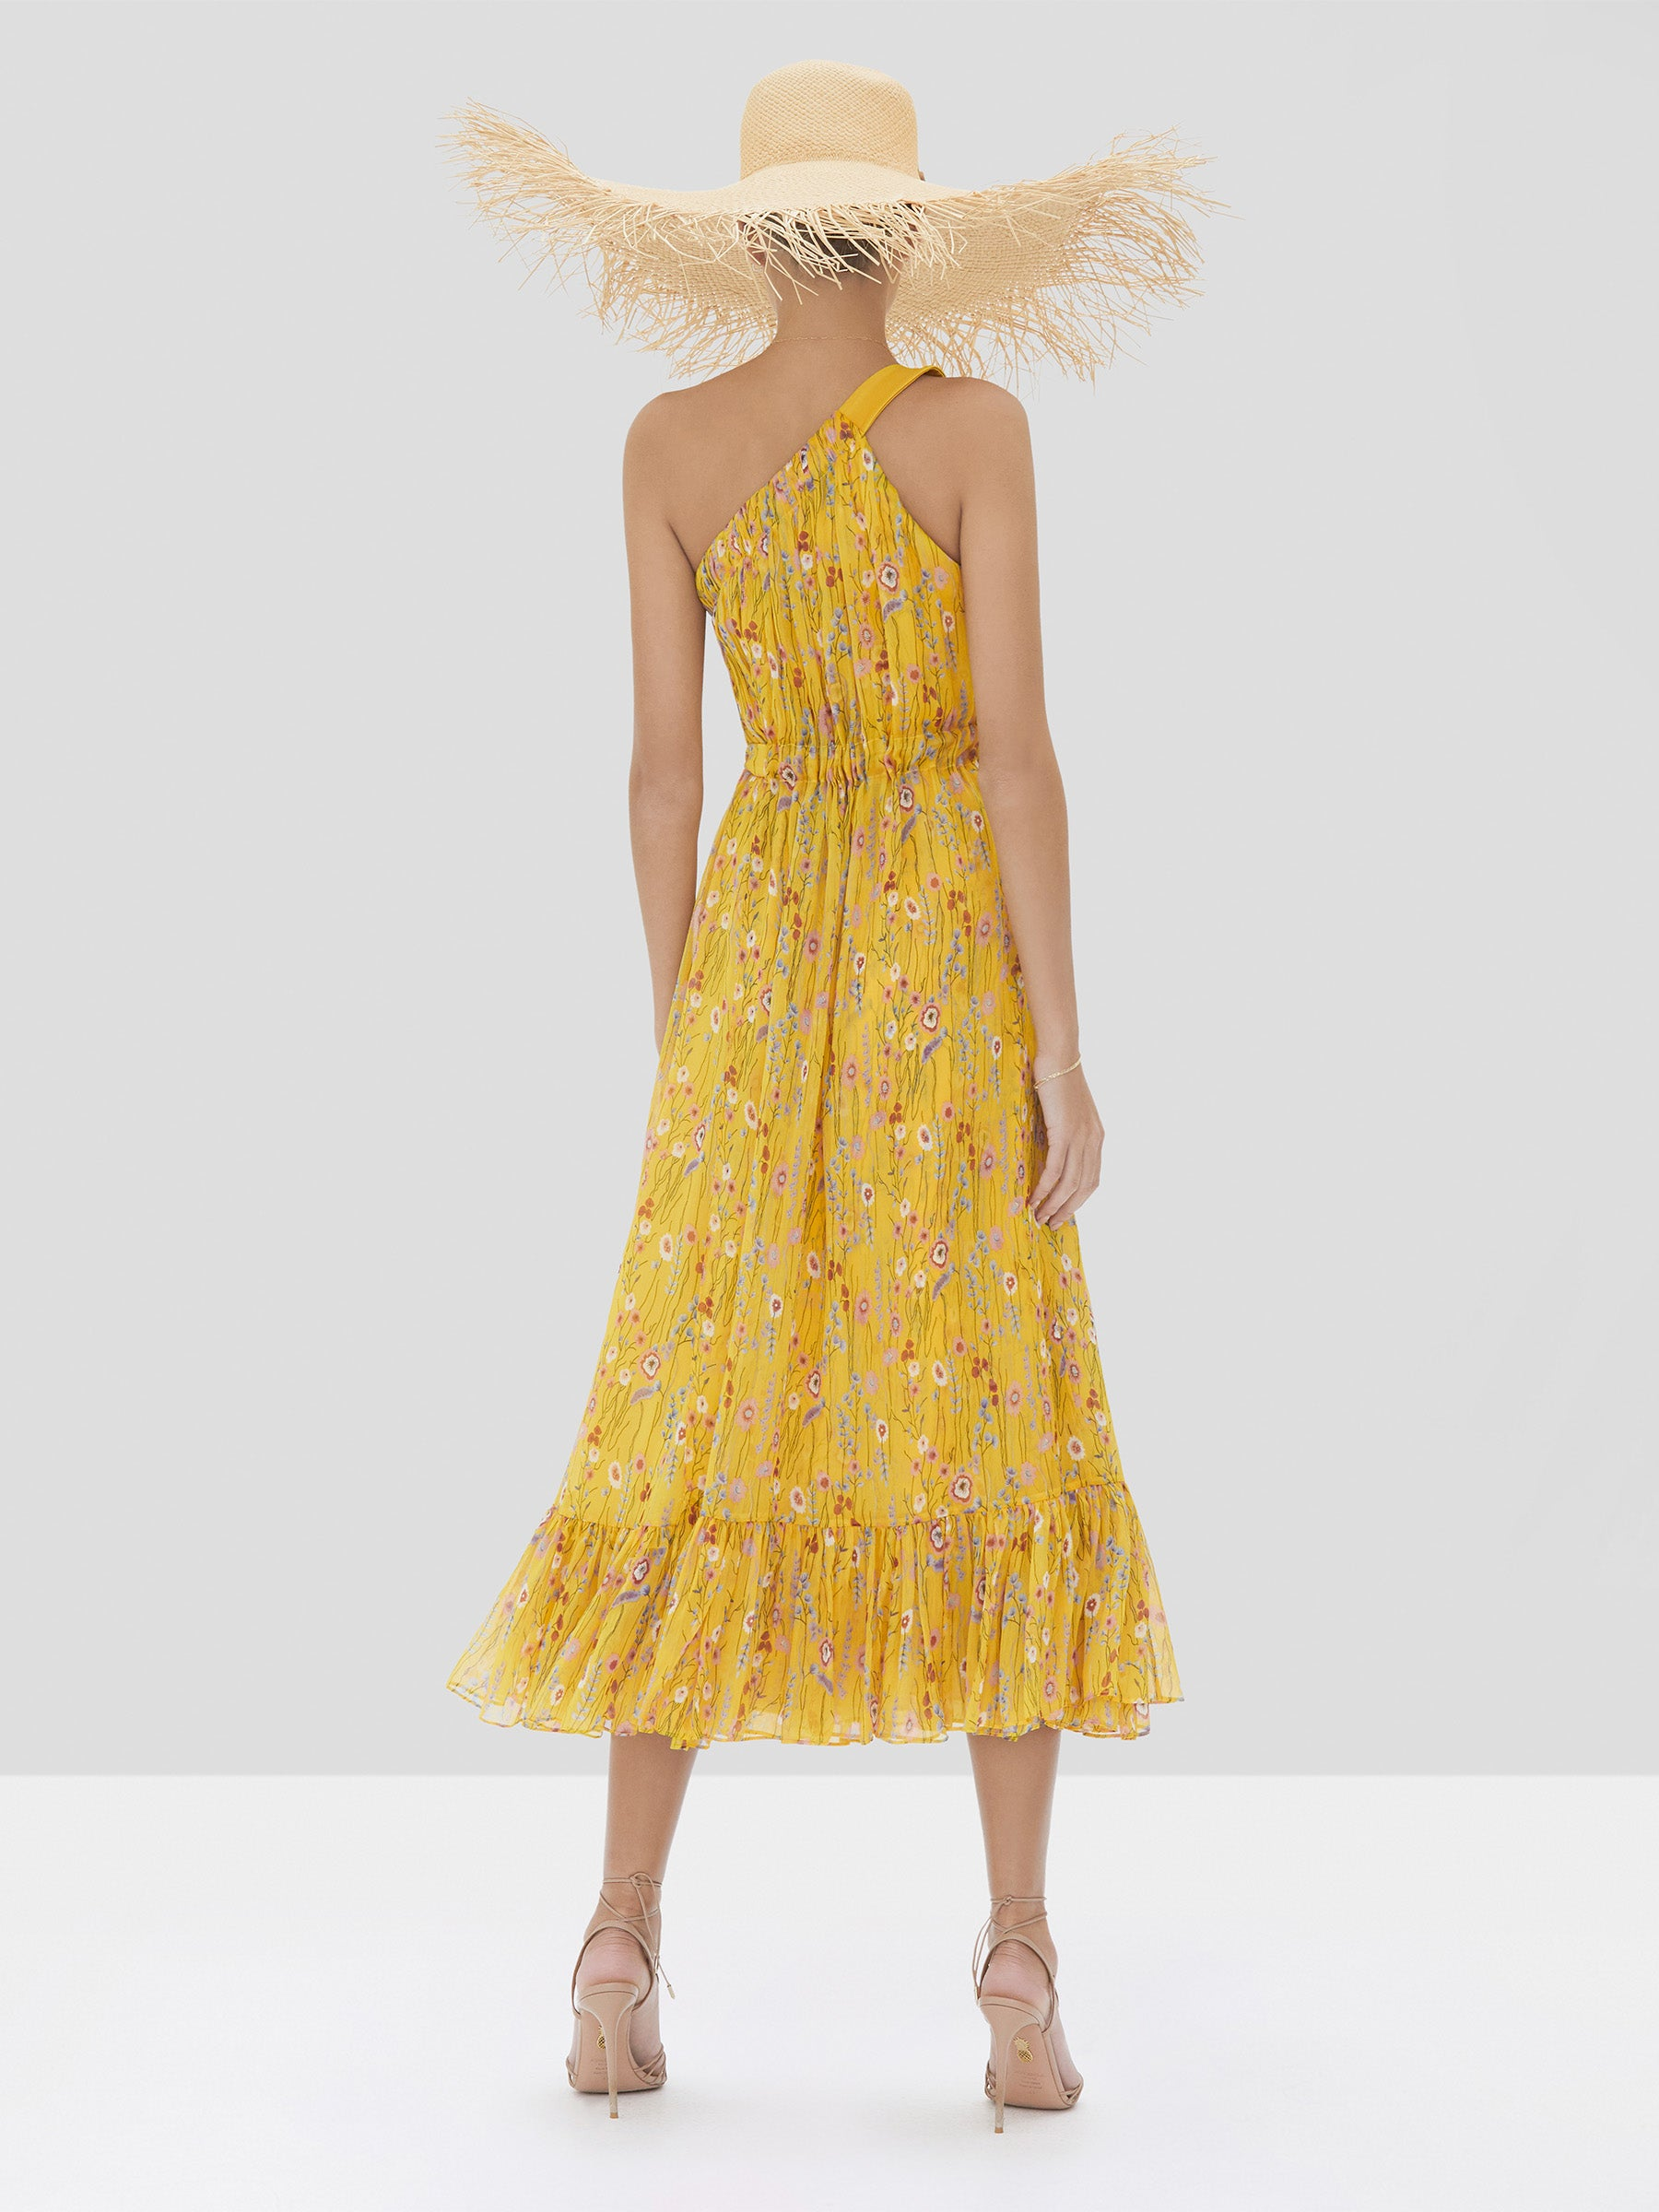 Alexis Teodora Dress in Sunrise Bouquet from Spring Summer 2020 Collection - Rear View